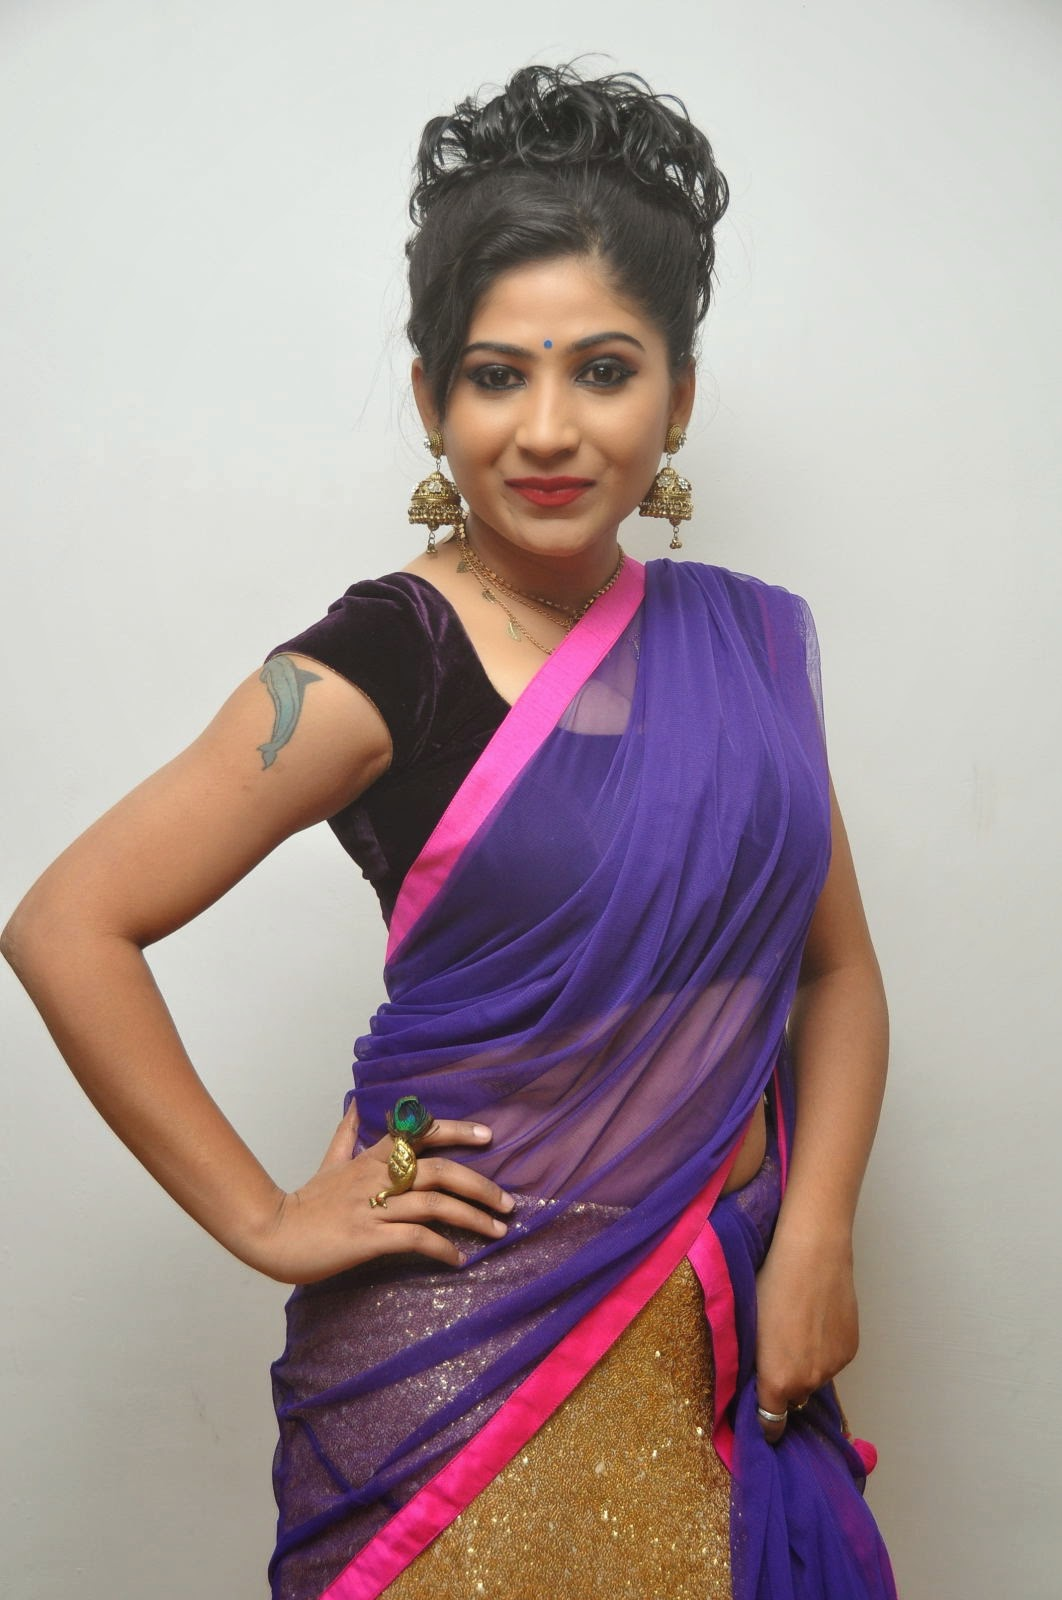 Madhulagna Das Half Saree photos-HQ-Photo-13